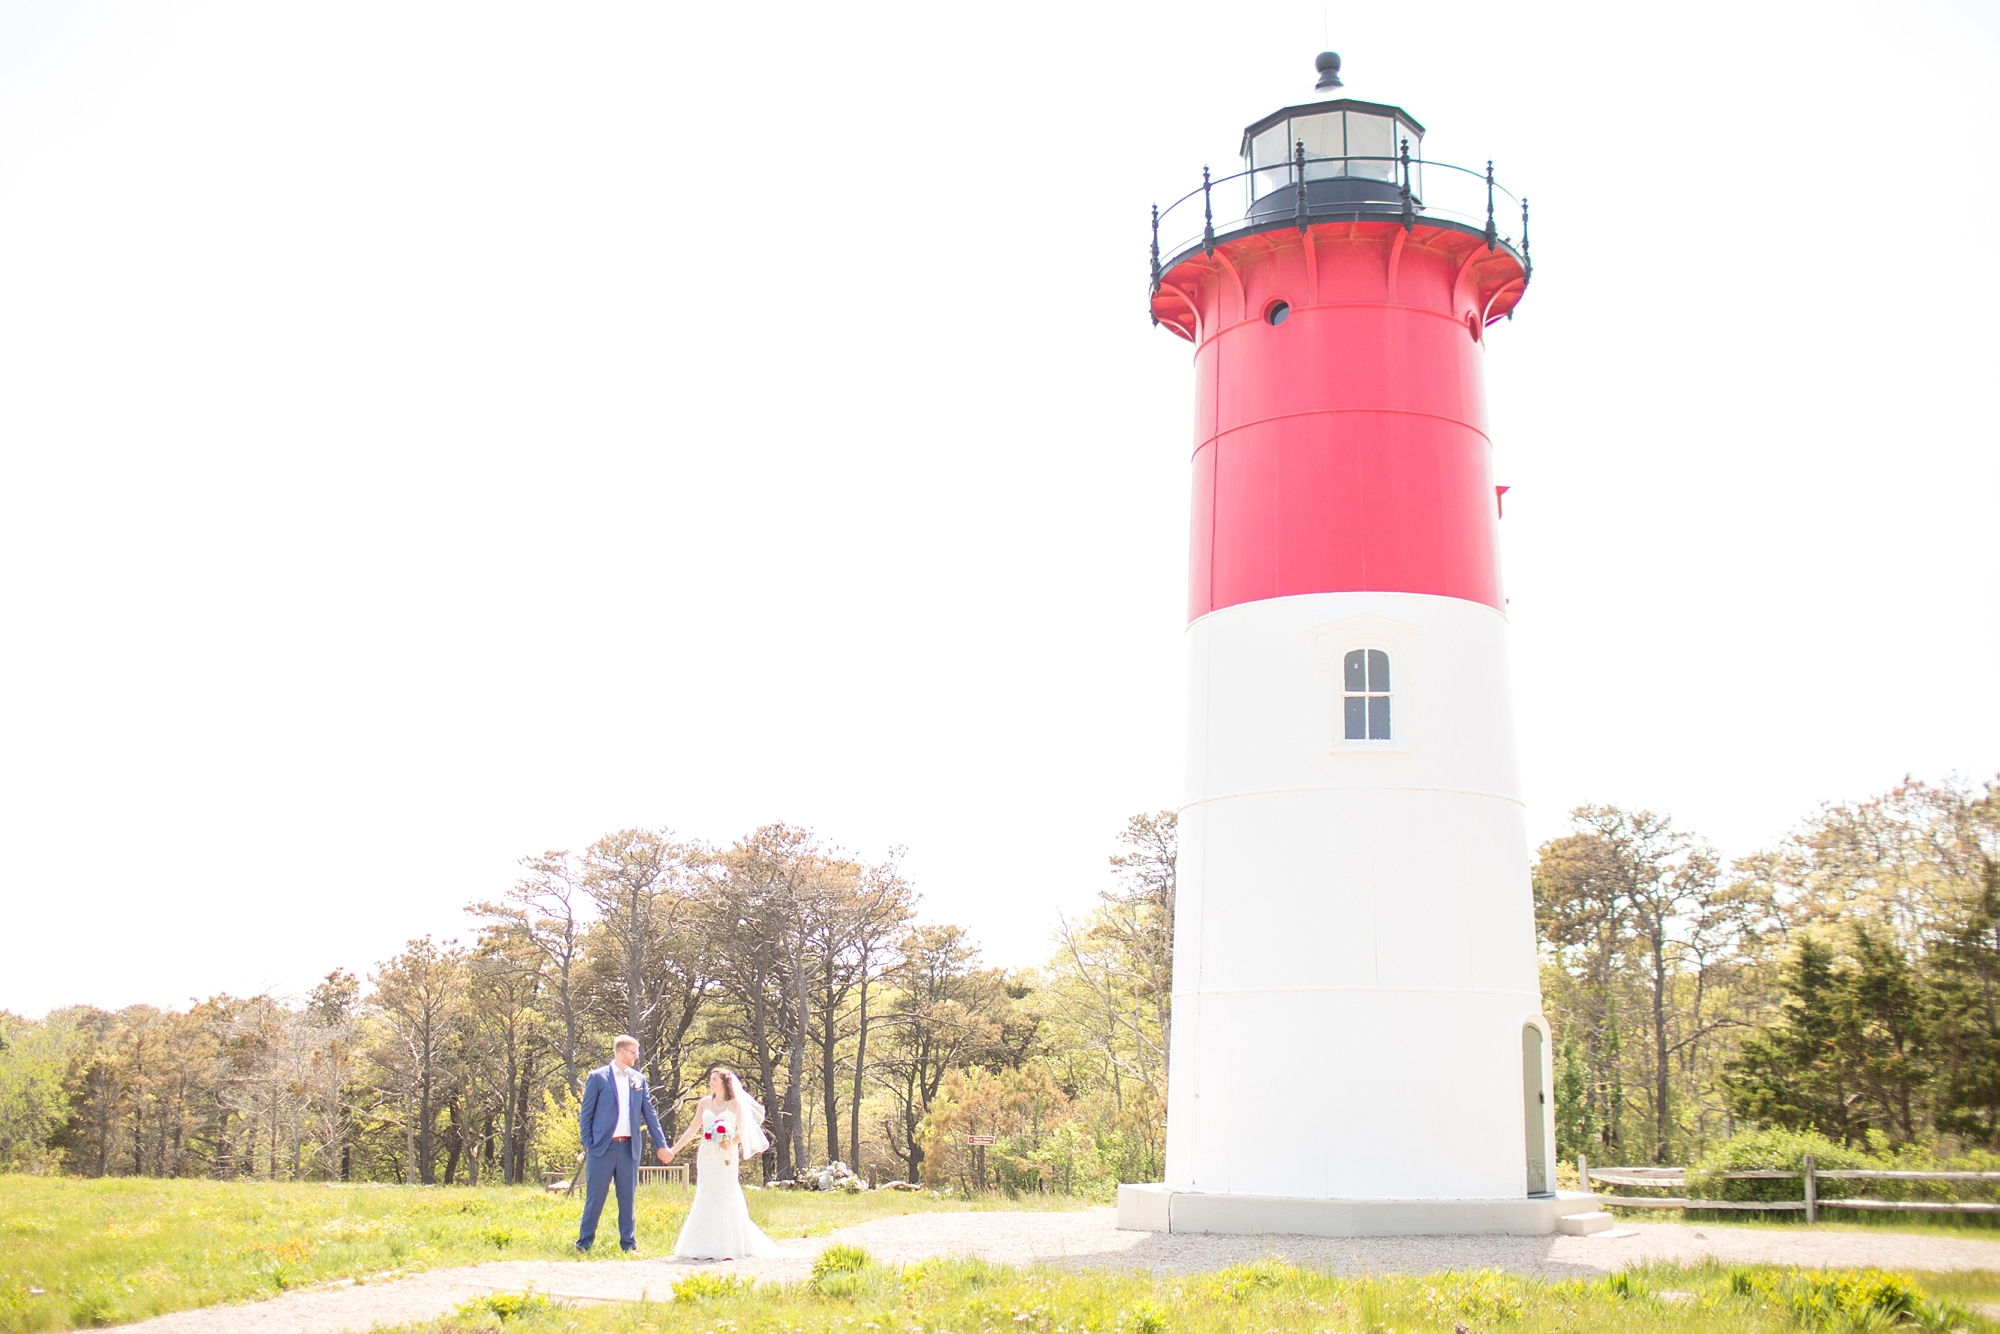 Yay for a lighthouse that matched the wedding colors!